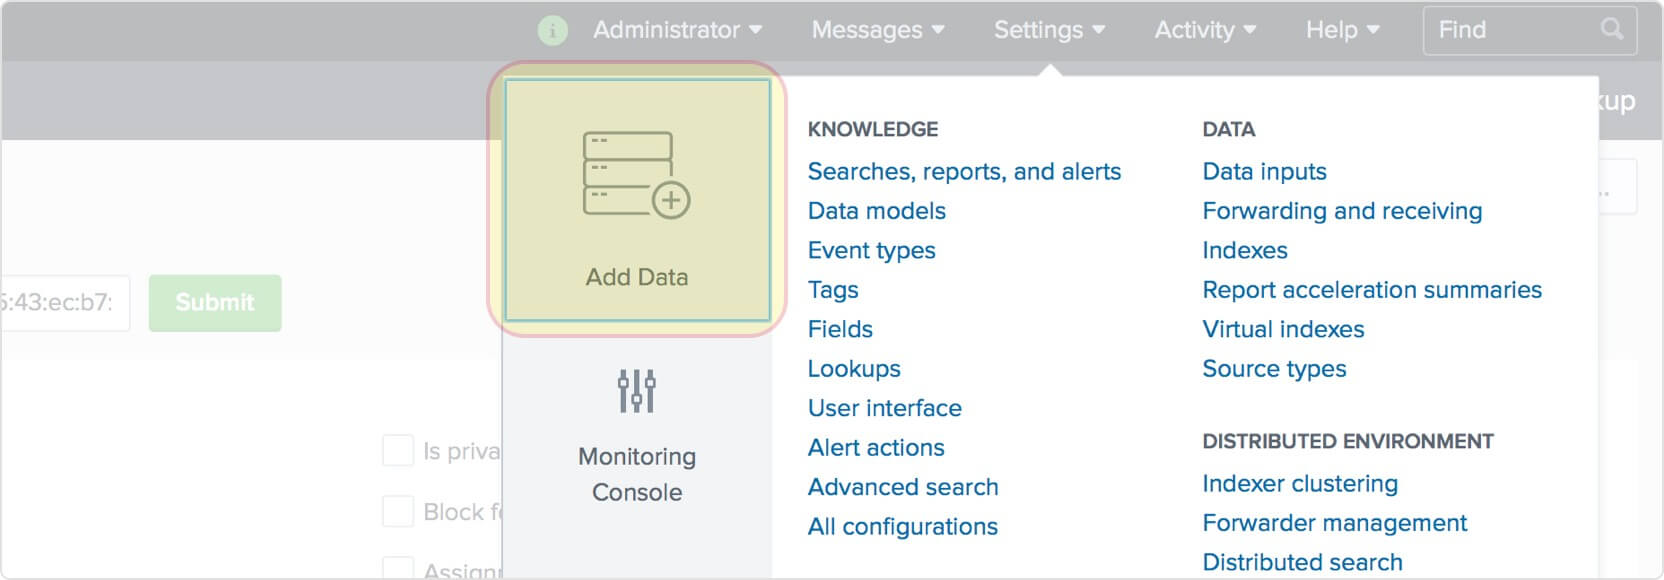 Add data to Splunk.